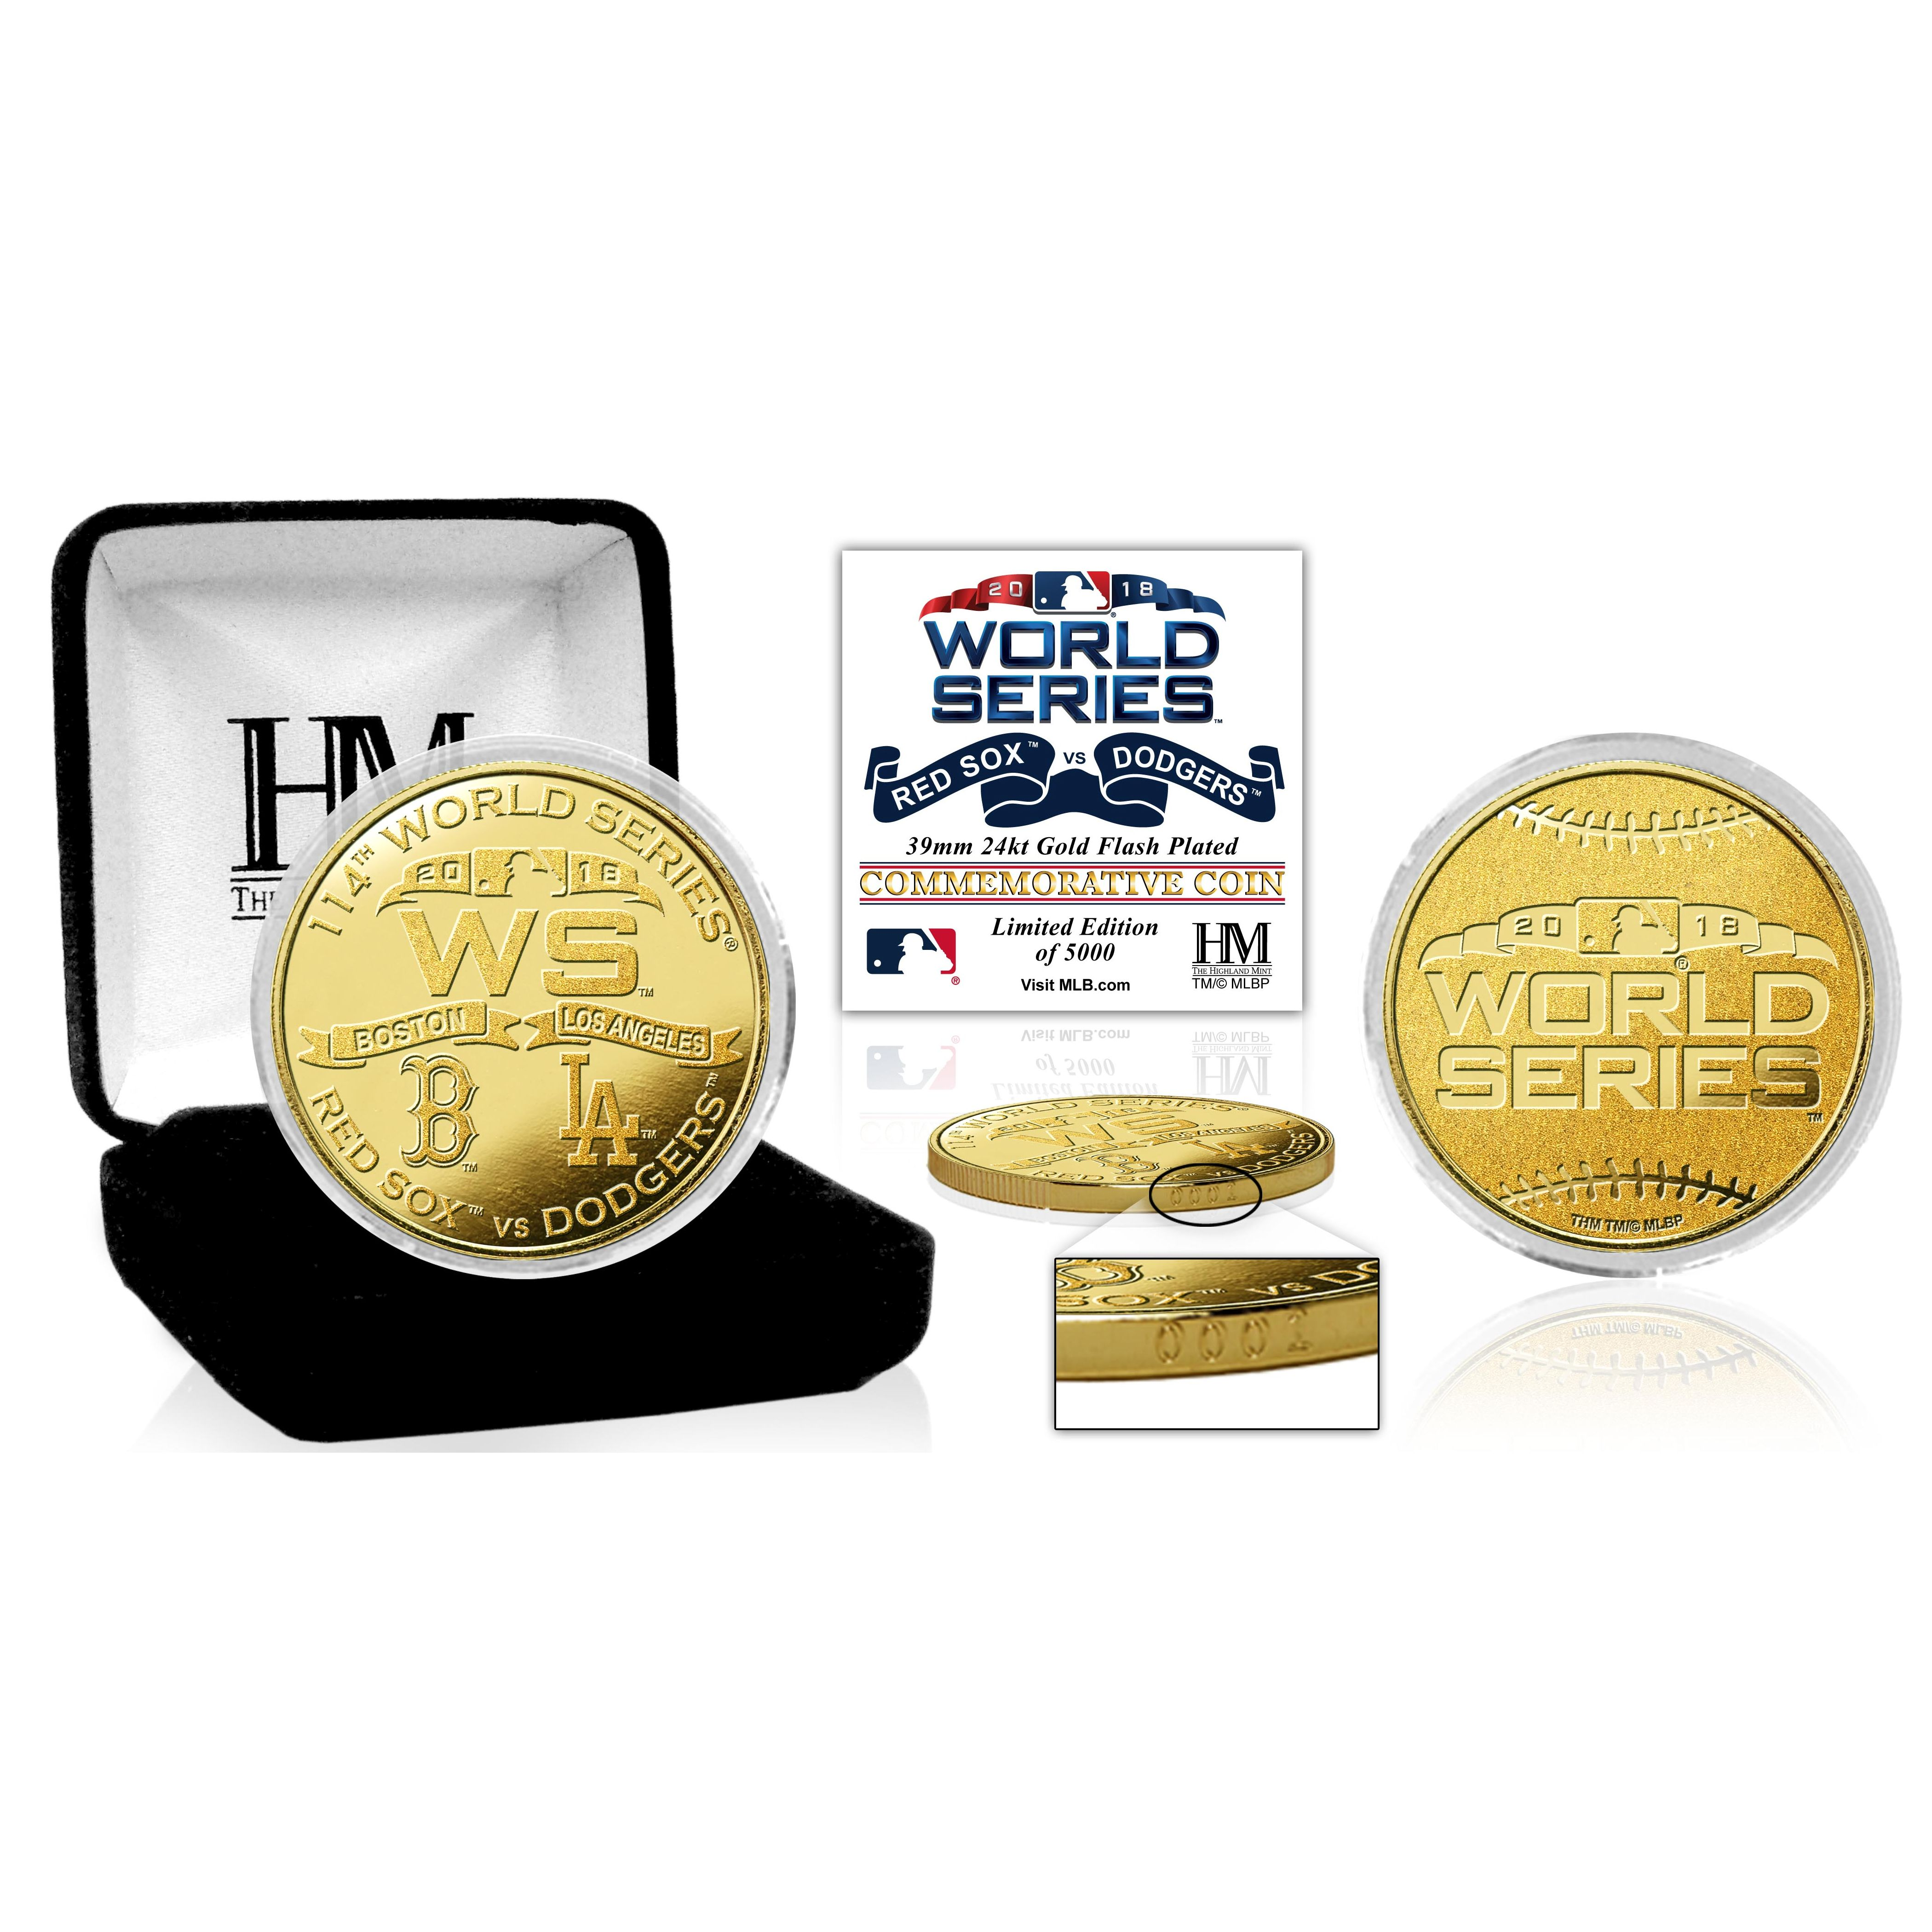 2018 World Series Dueling Gold Mint Coin (Red Sox vs. Dodgers)